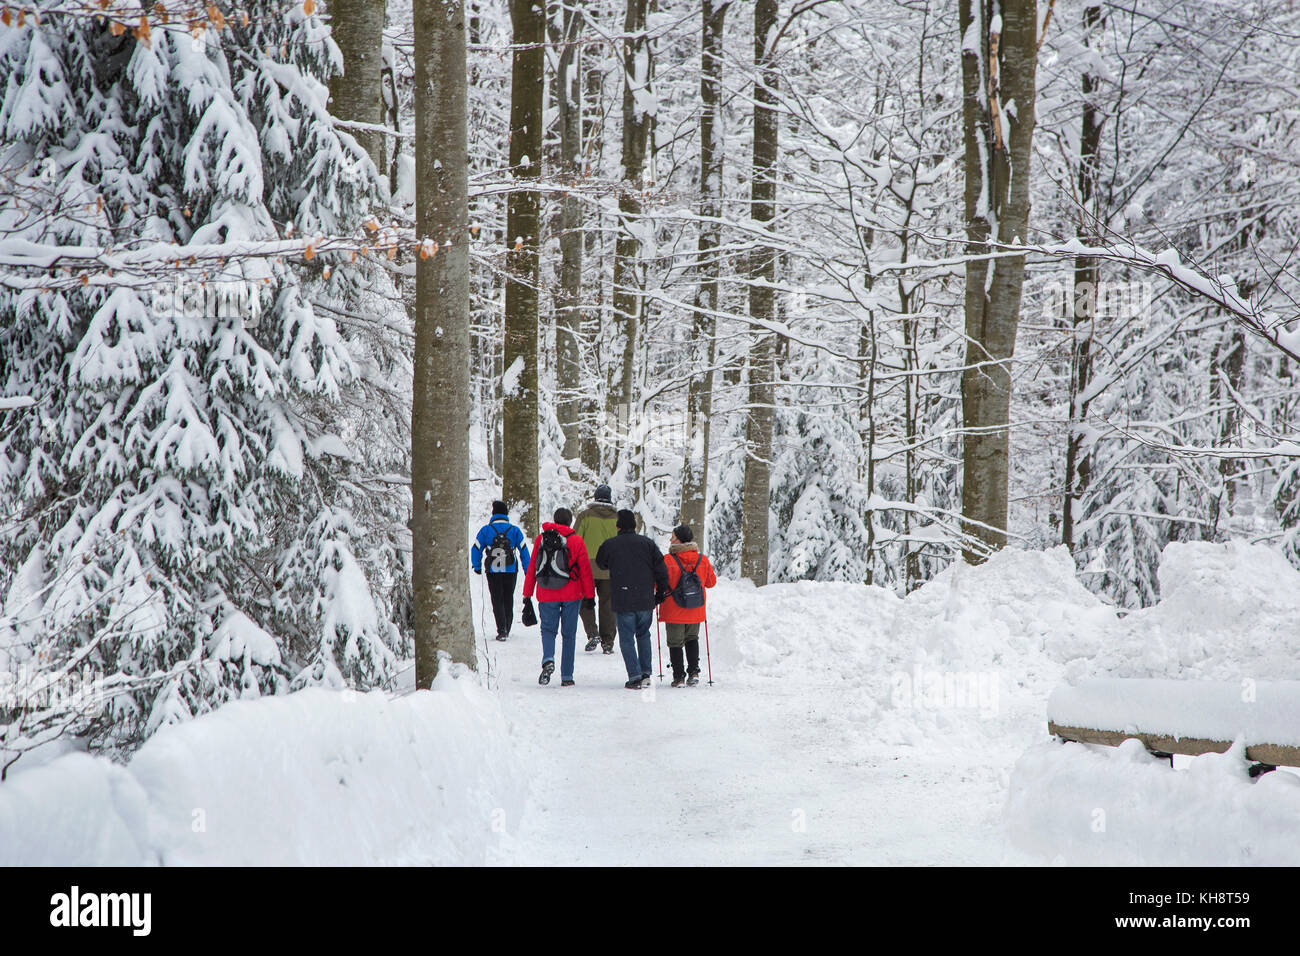 Group of walkers walking along path in mixed forest with trees covered in snow in winter - Stock Image